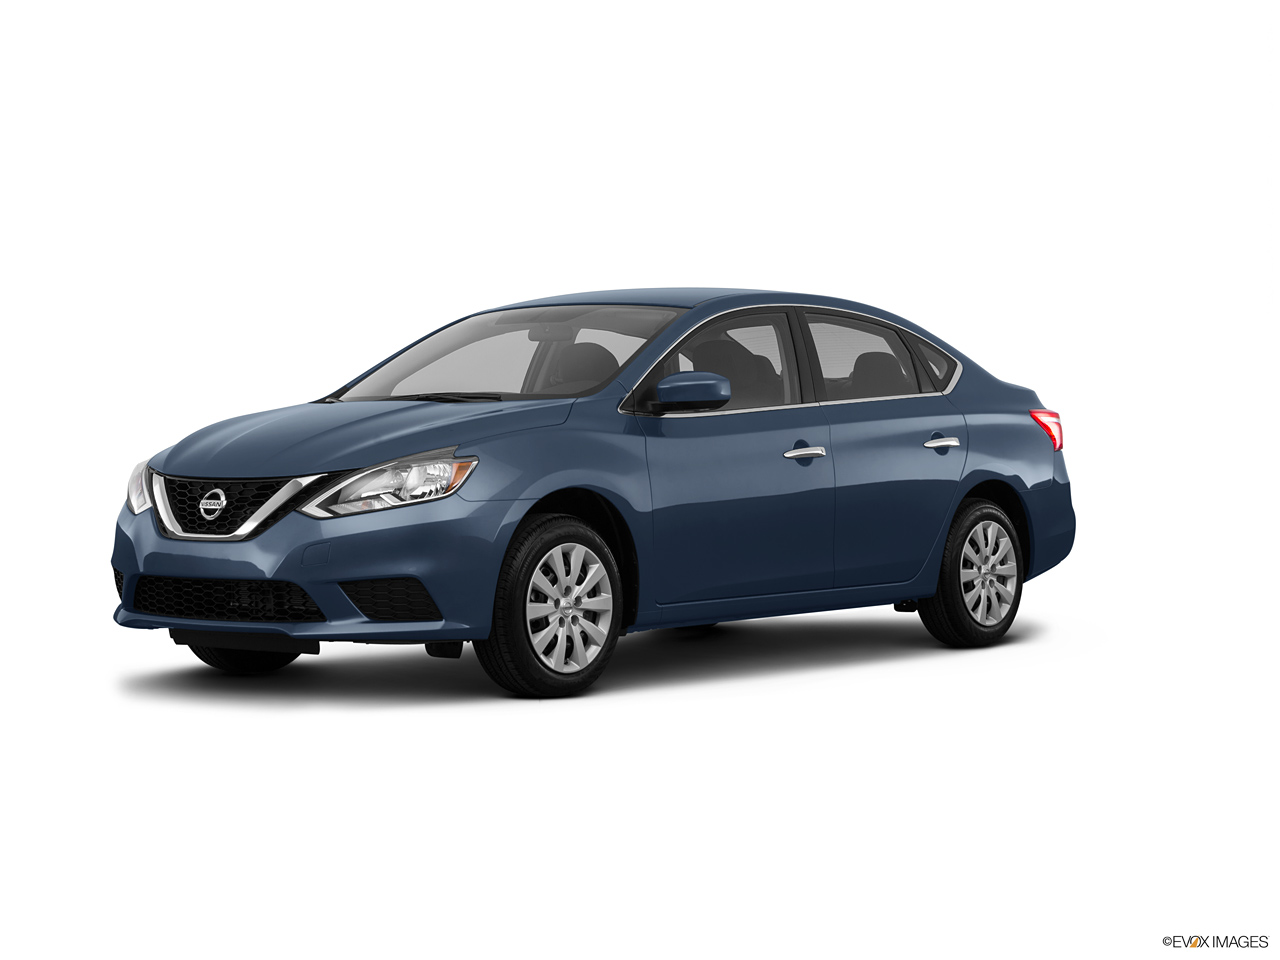 nissan sentra 2016 1 6l sv in saudi arabia new car prices specs reviews photos yallamotor. Black Bedroom Furniture Sets. Home Design Ideas